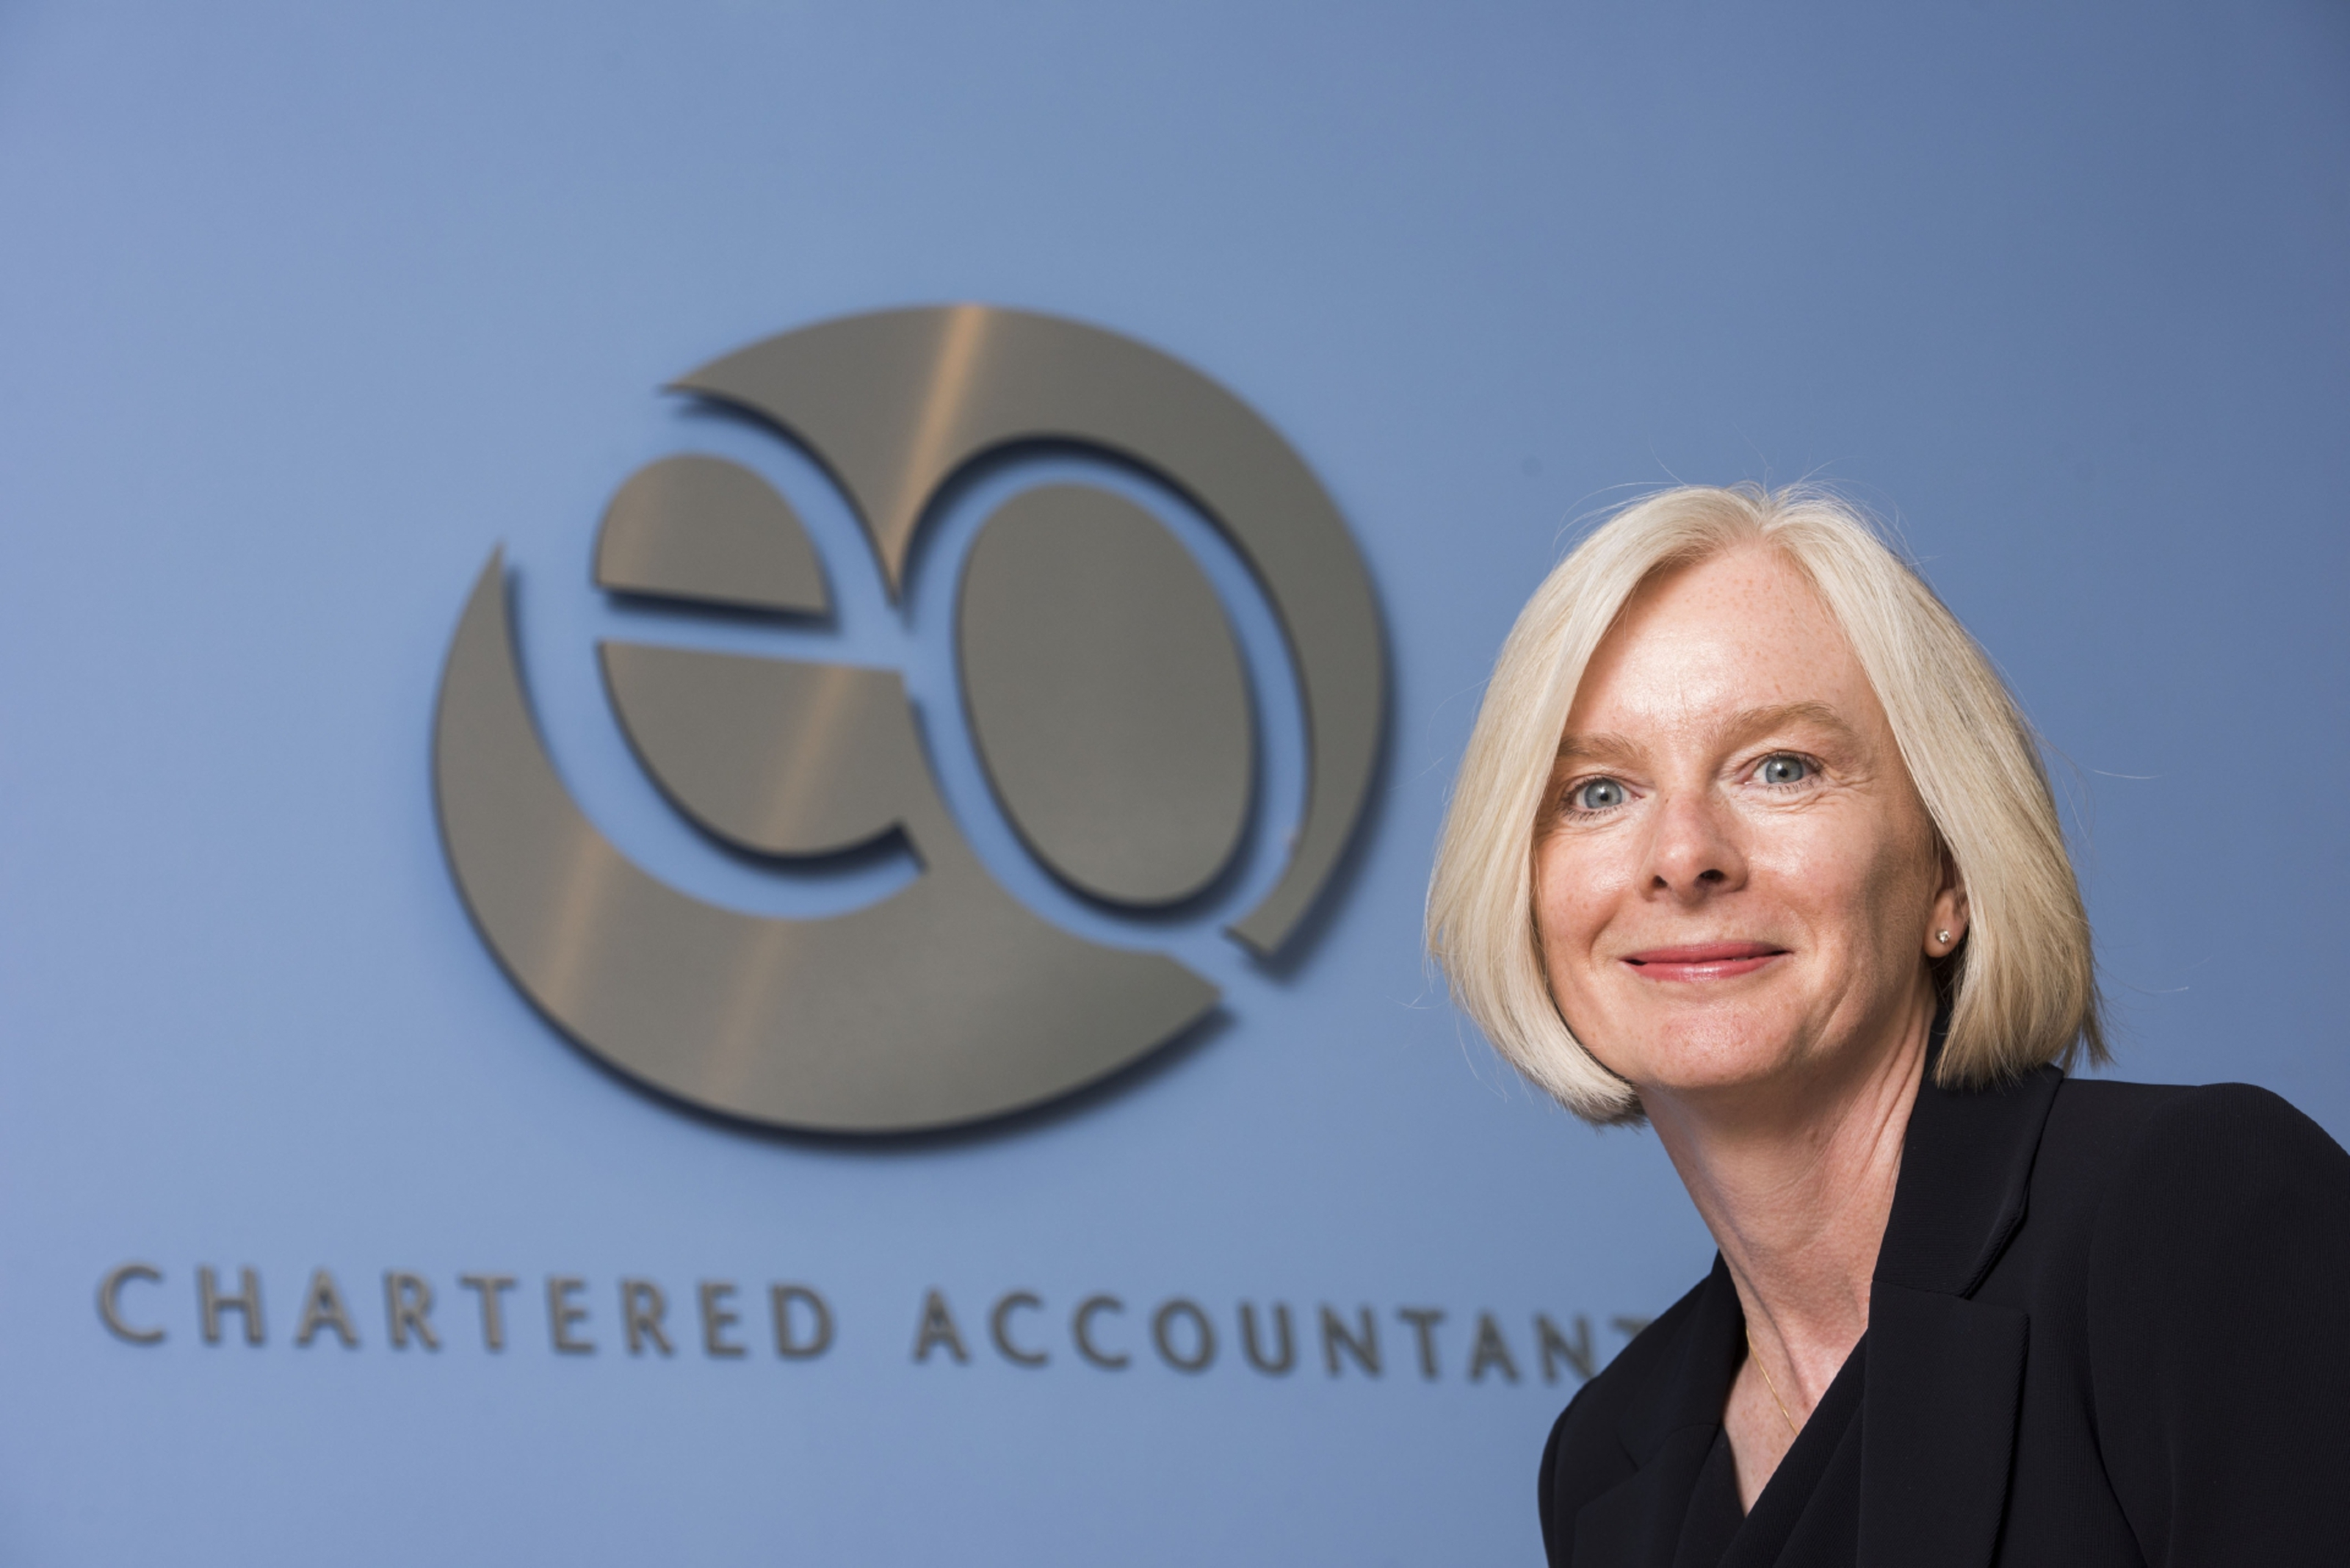 Angela Haig, new partner of EQ Accountants in Forfar. Pic Alan Richardson Dundee, Pix-AR.co.uk EQ Accountants. Angela Haig